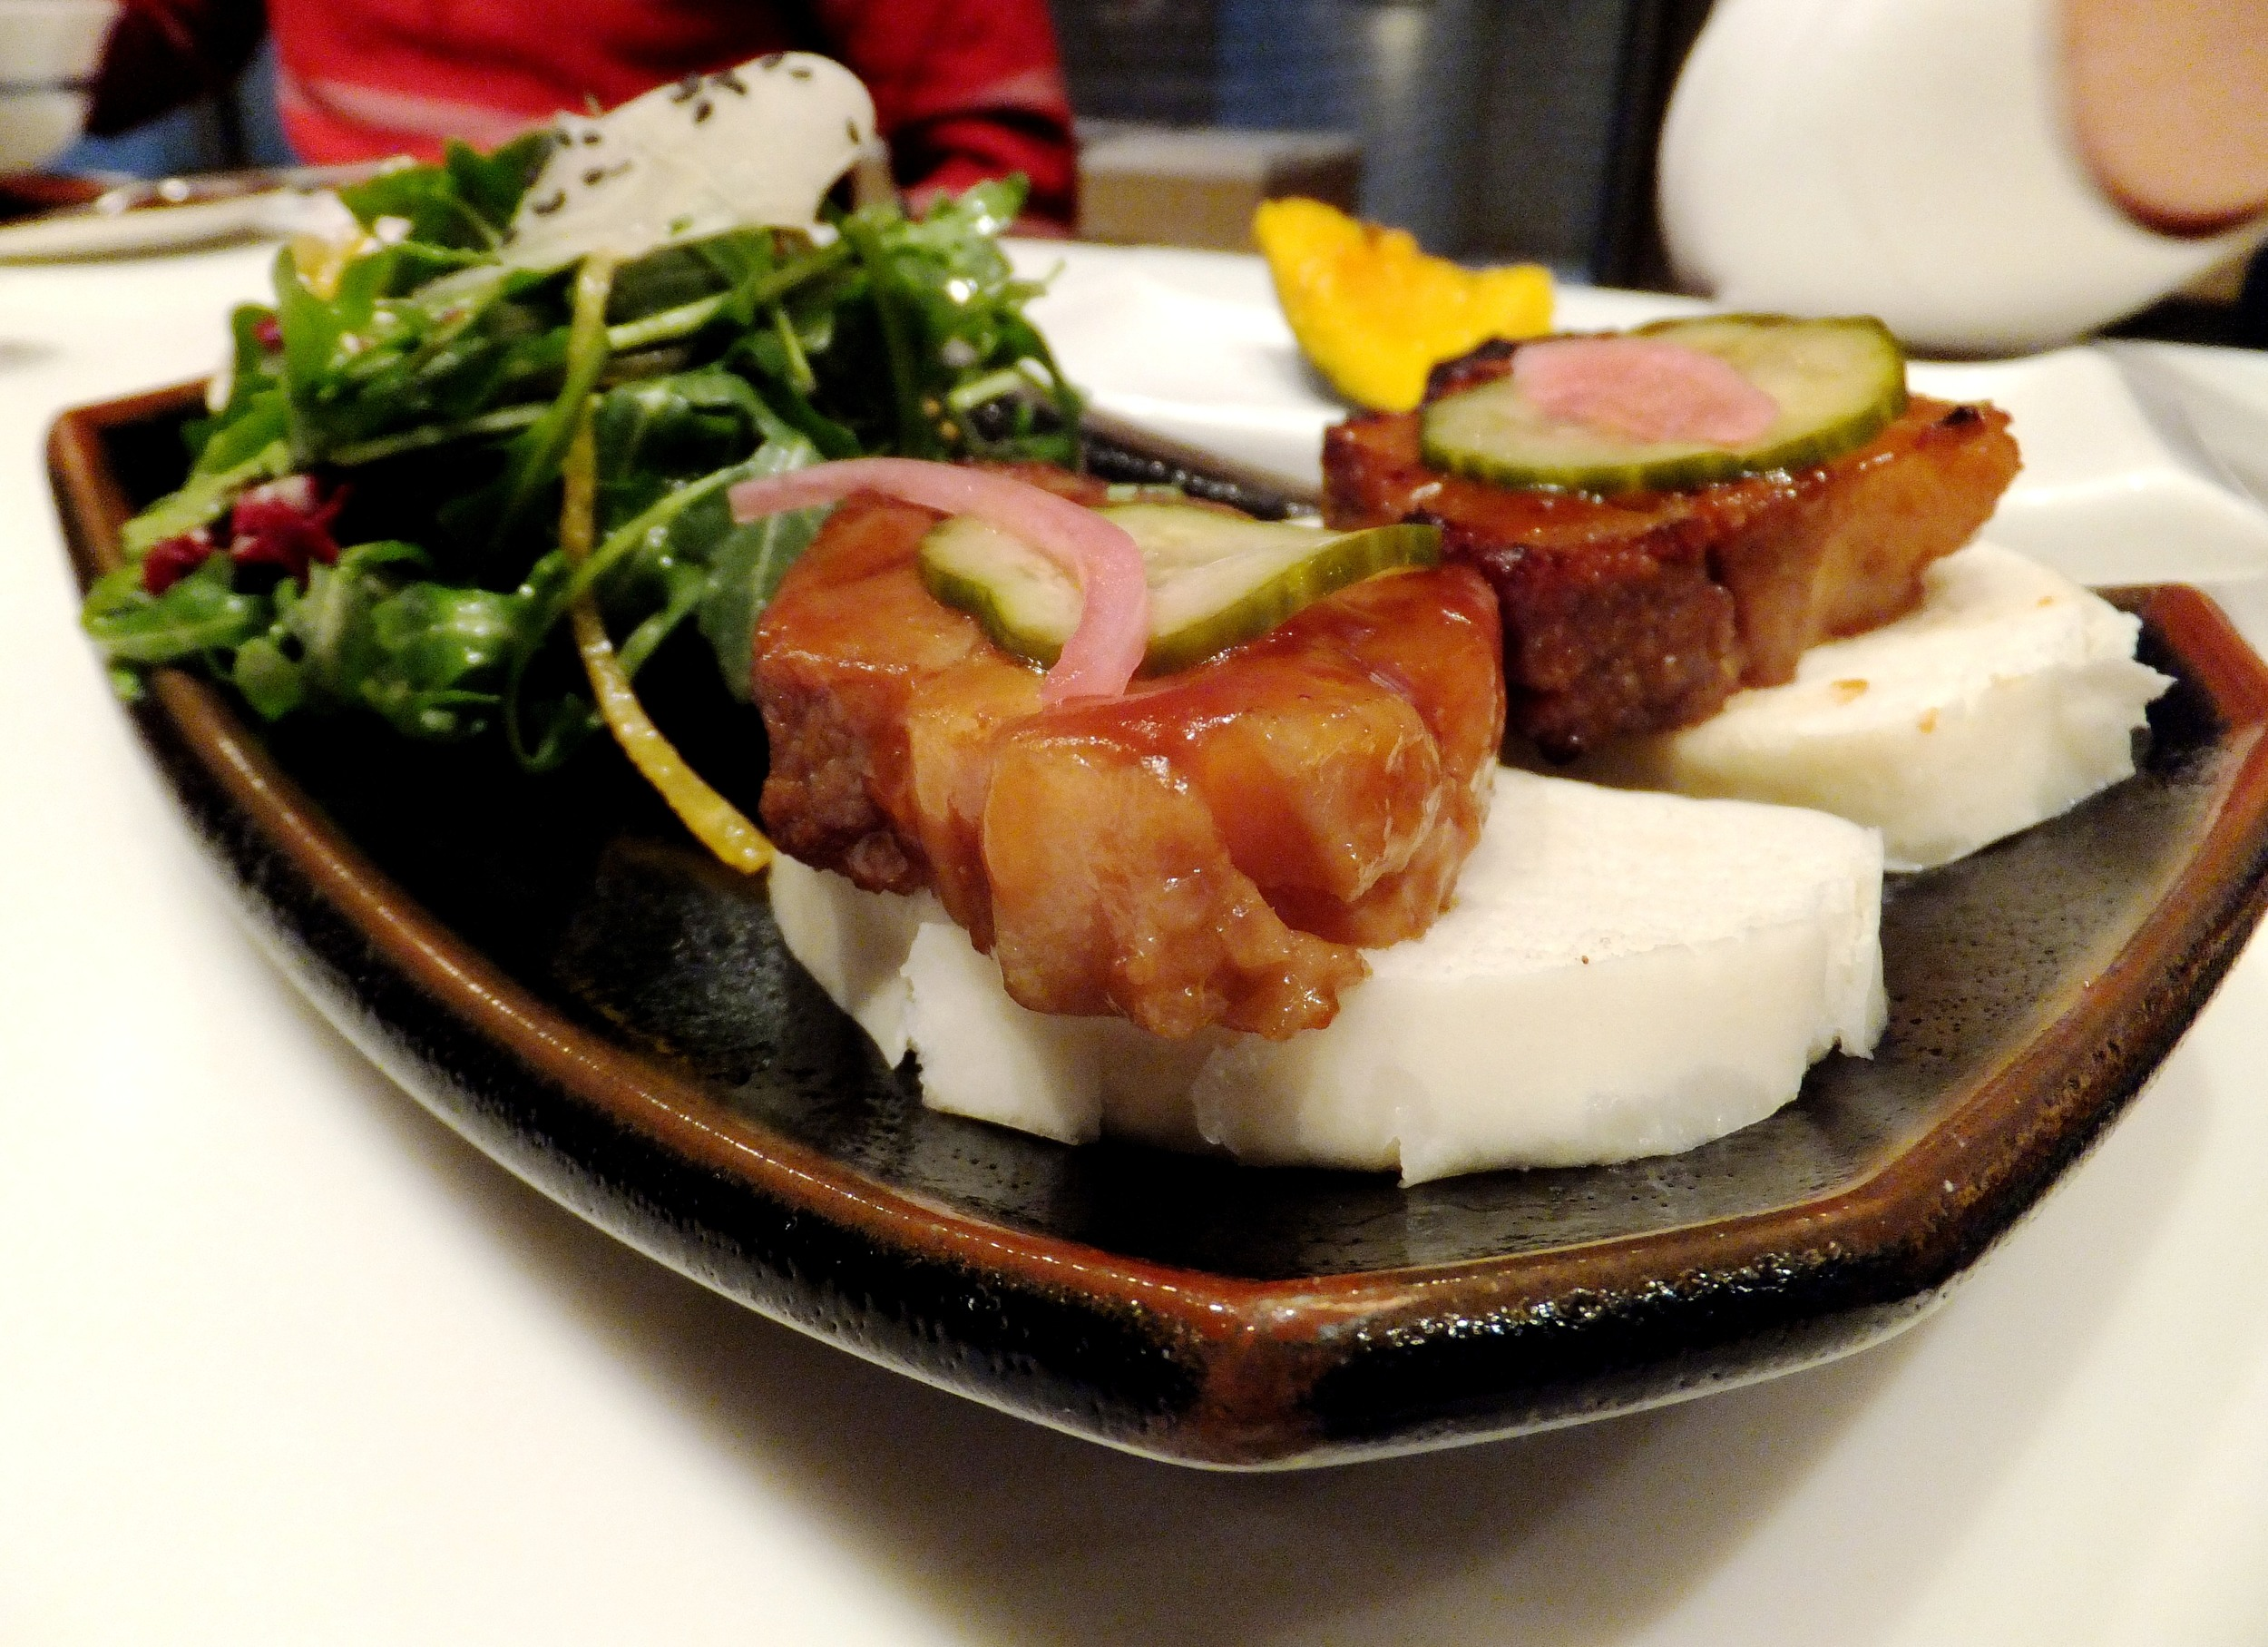 Figure 1. Pork belly snack